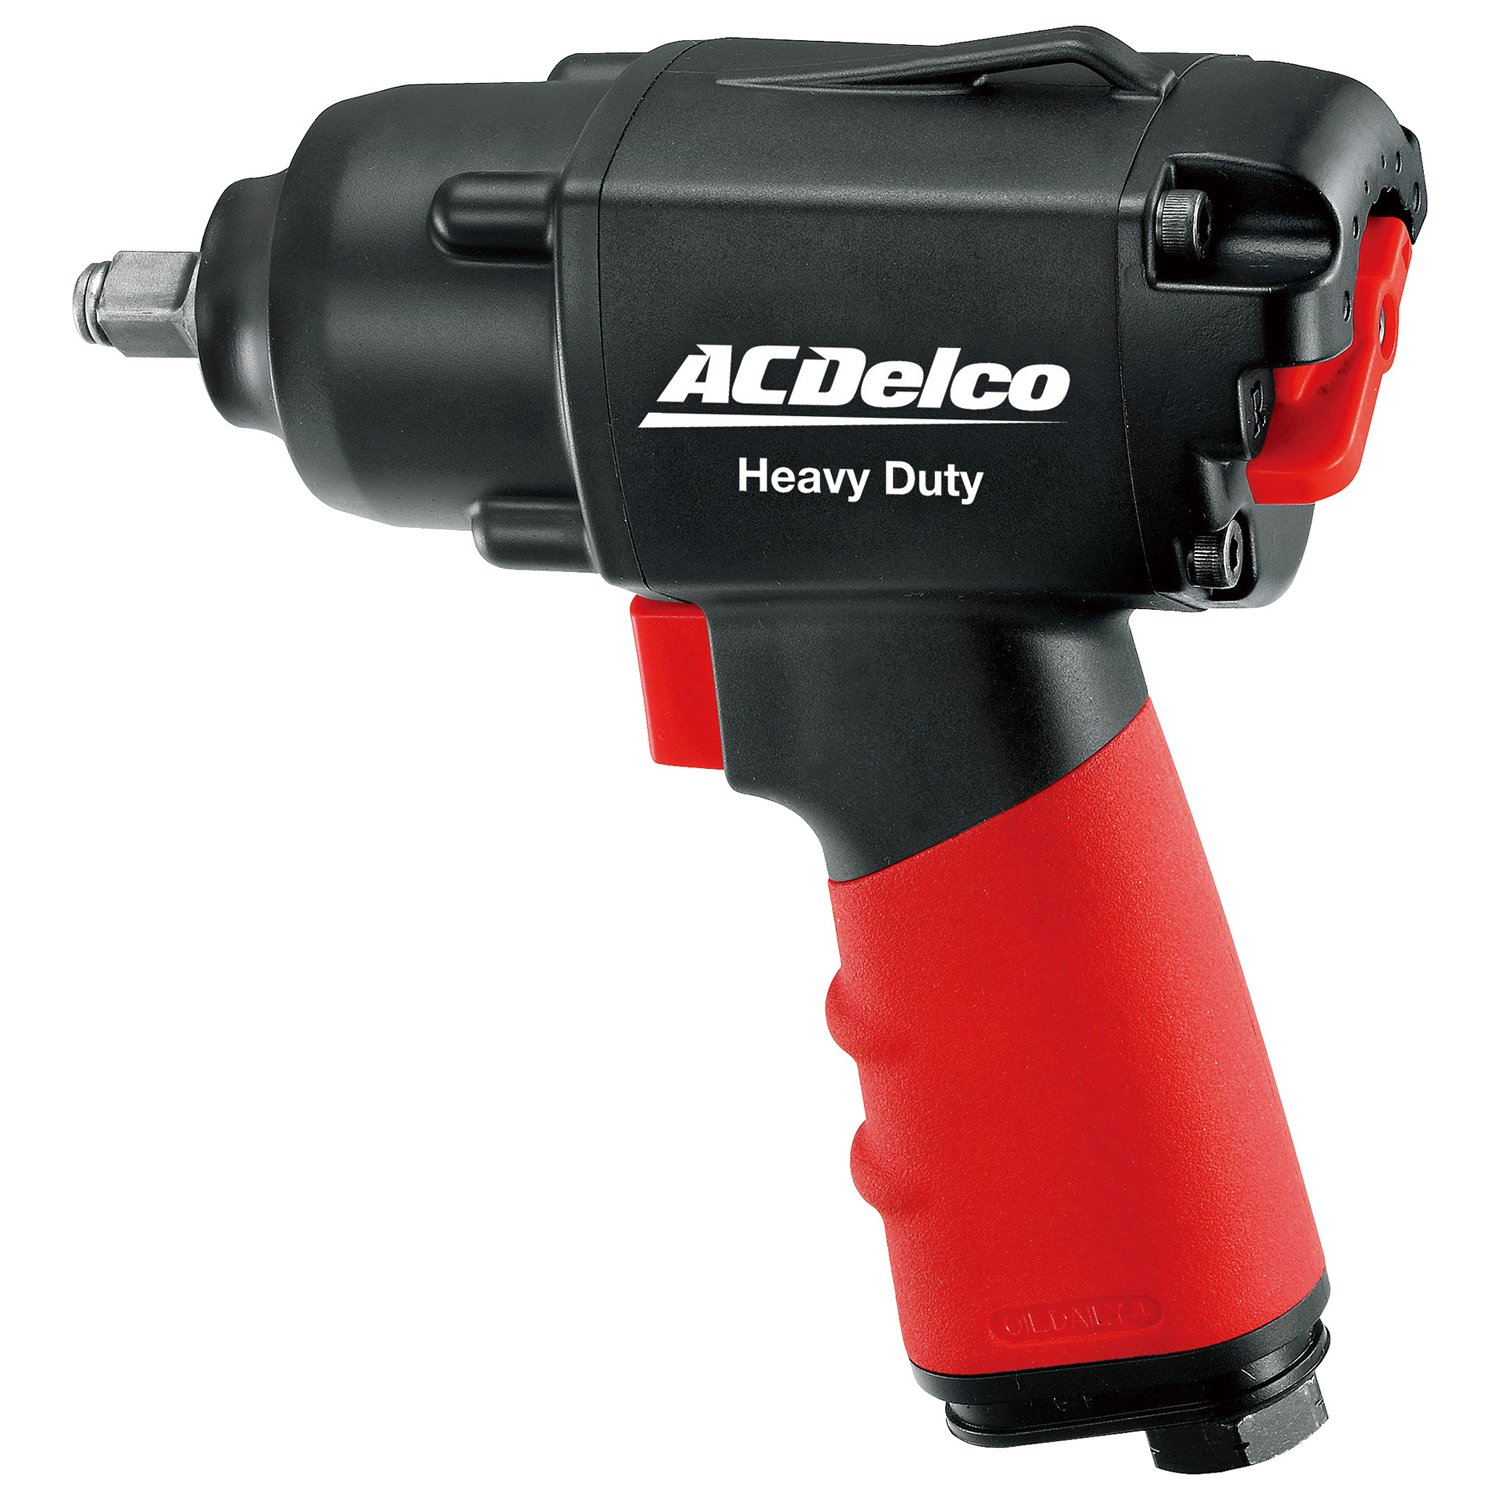 ACDelco ANI307 3/8-Inch Composite Impact Wrench, 280-Feet Pound Heavy Duty Durofix